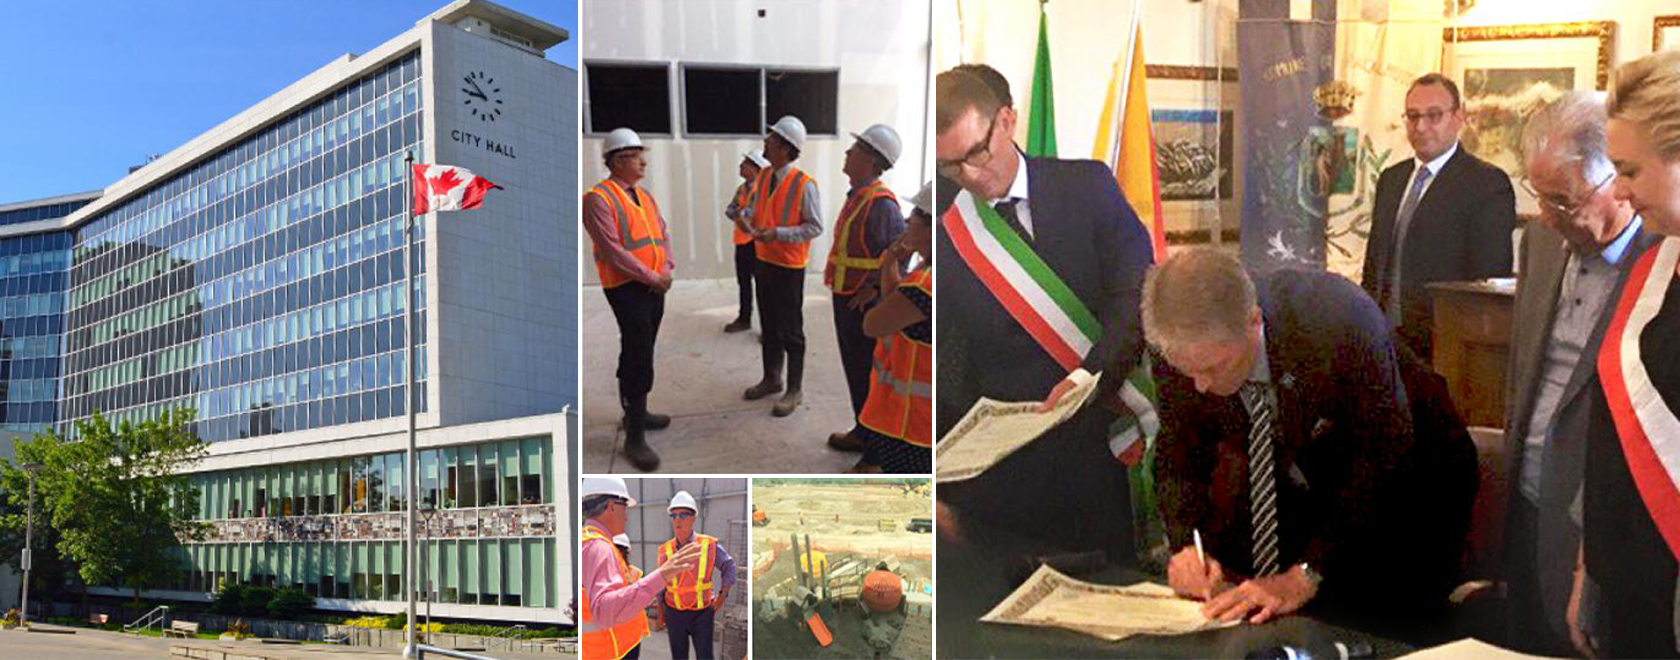 Collage of City Hall People standing on construction sites and Mayor with international delegates